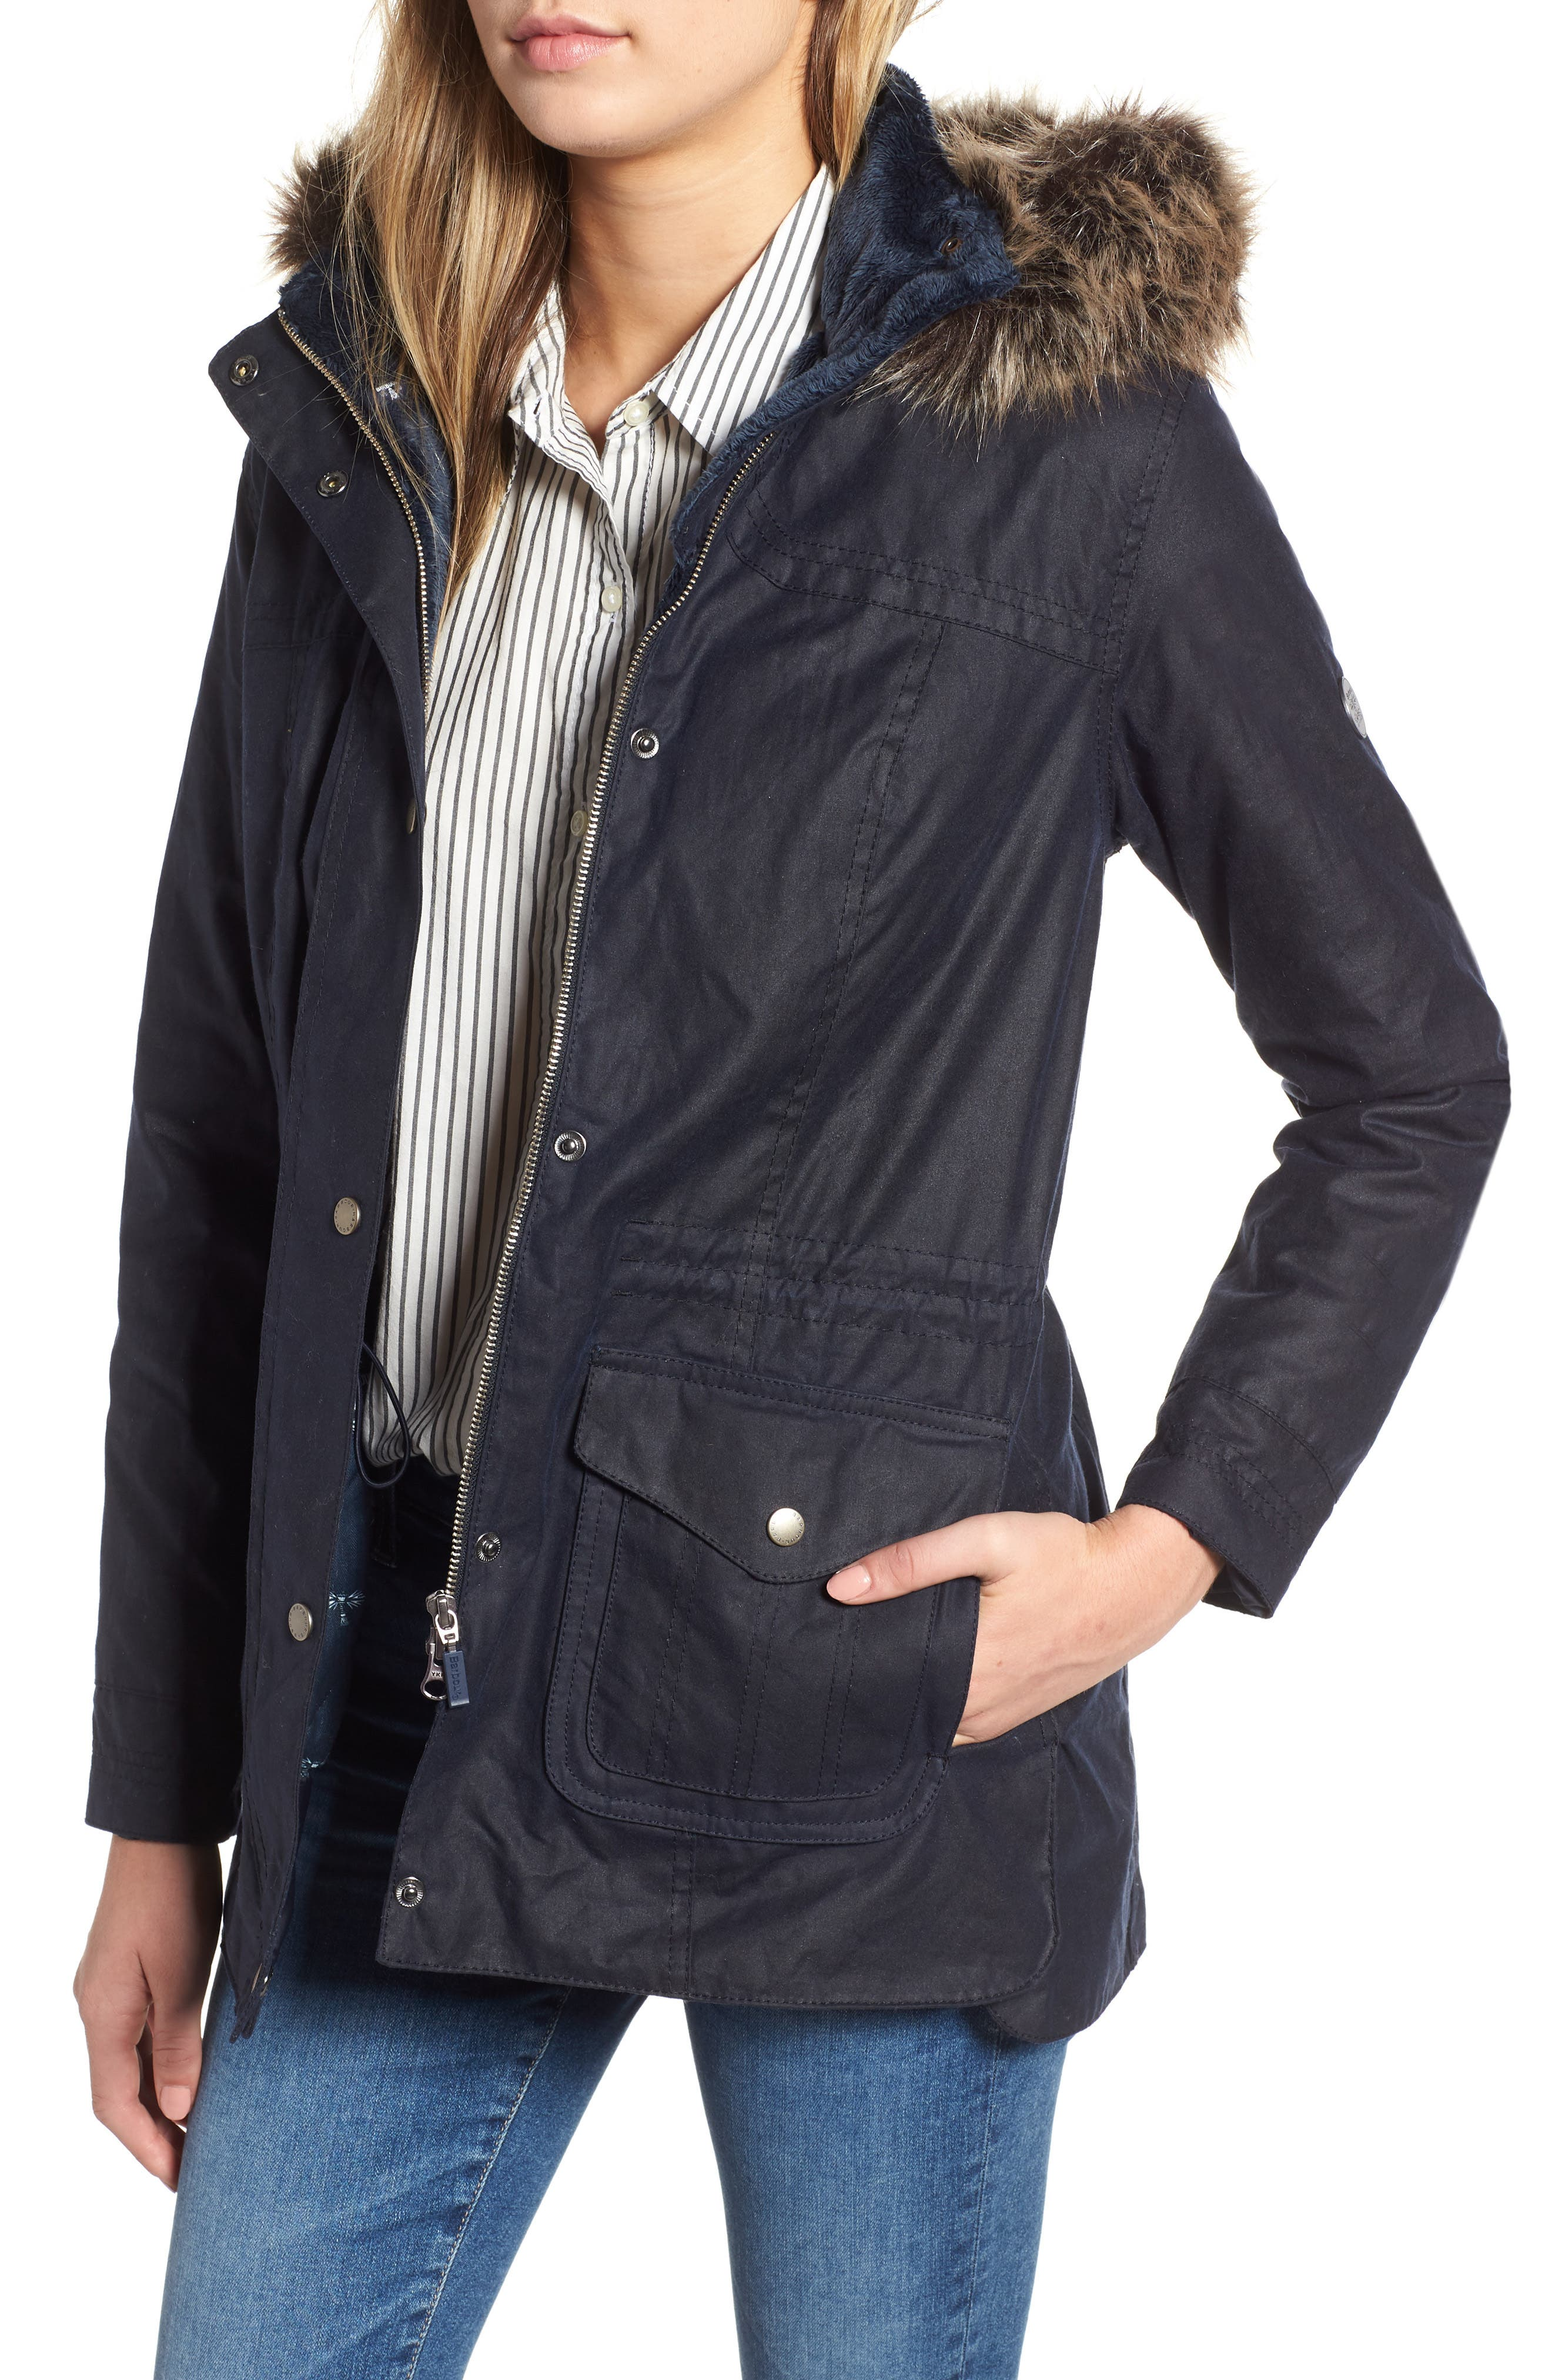 Southwold Jacket with Faux Fur Lining & Trim,                             Main thumbnail 1, color,                             ROYAL NAVY